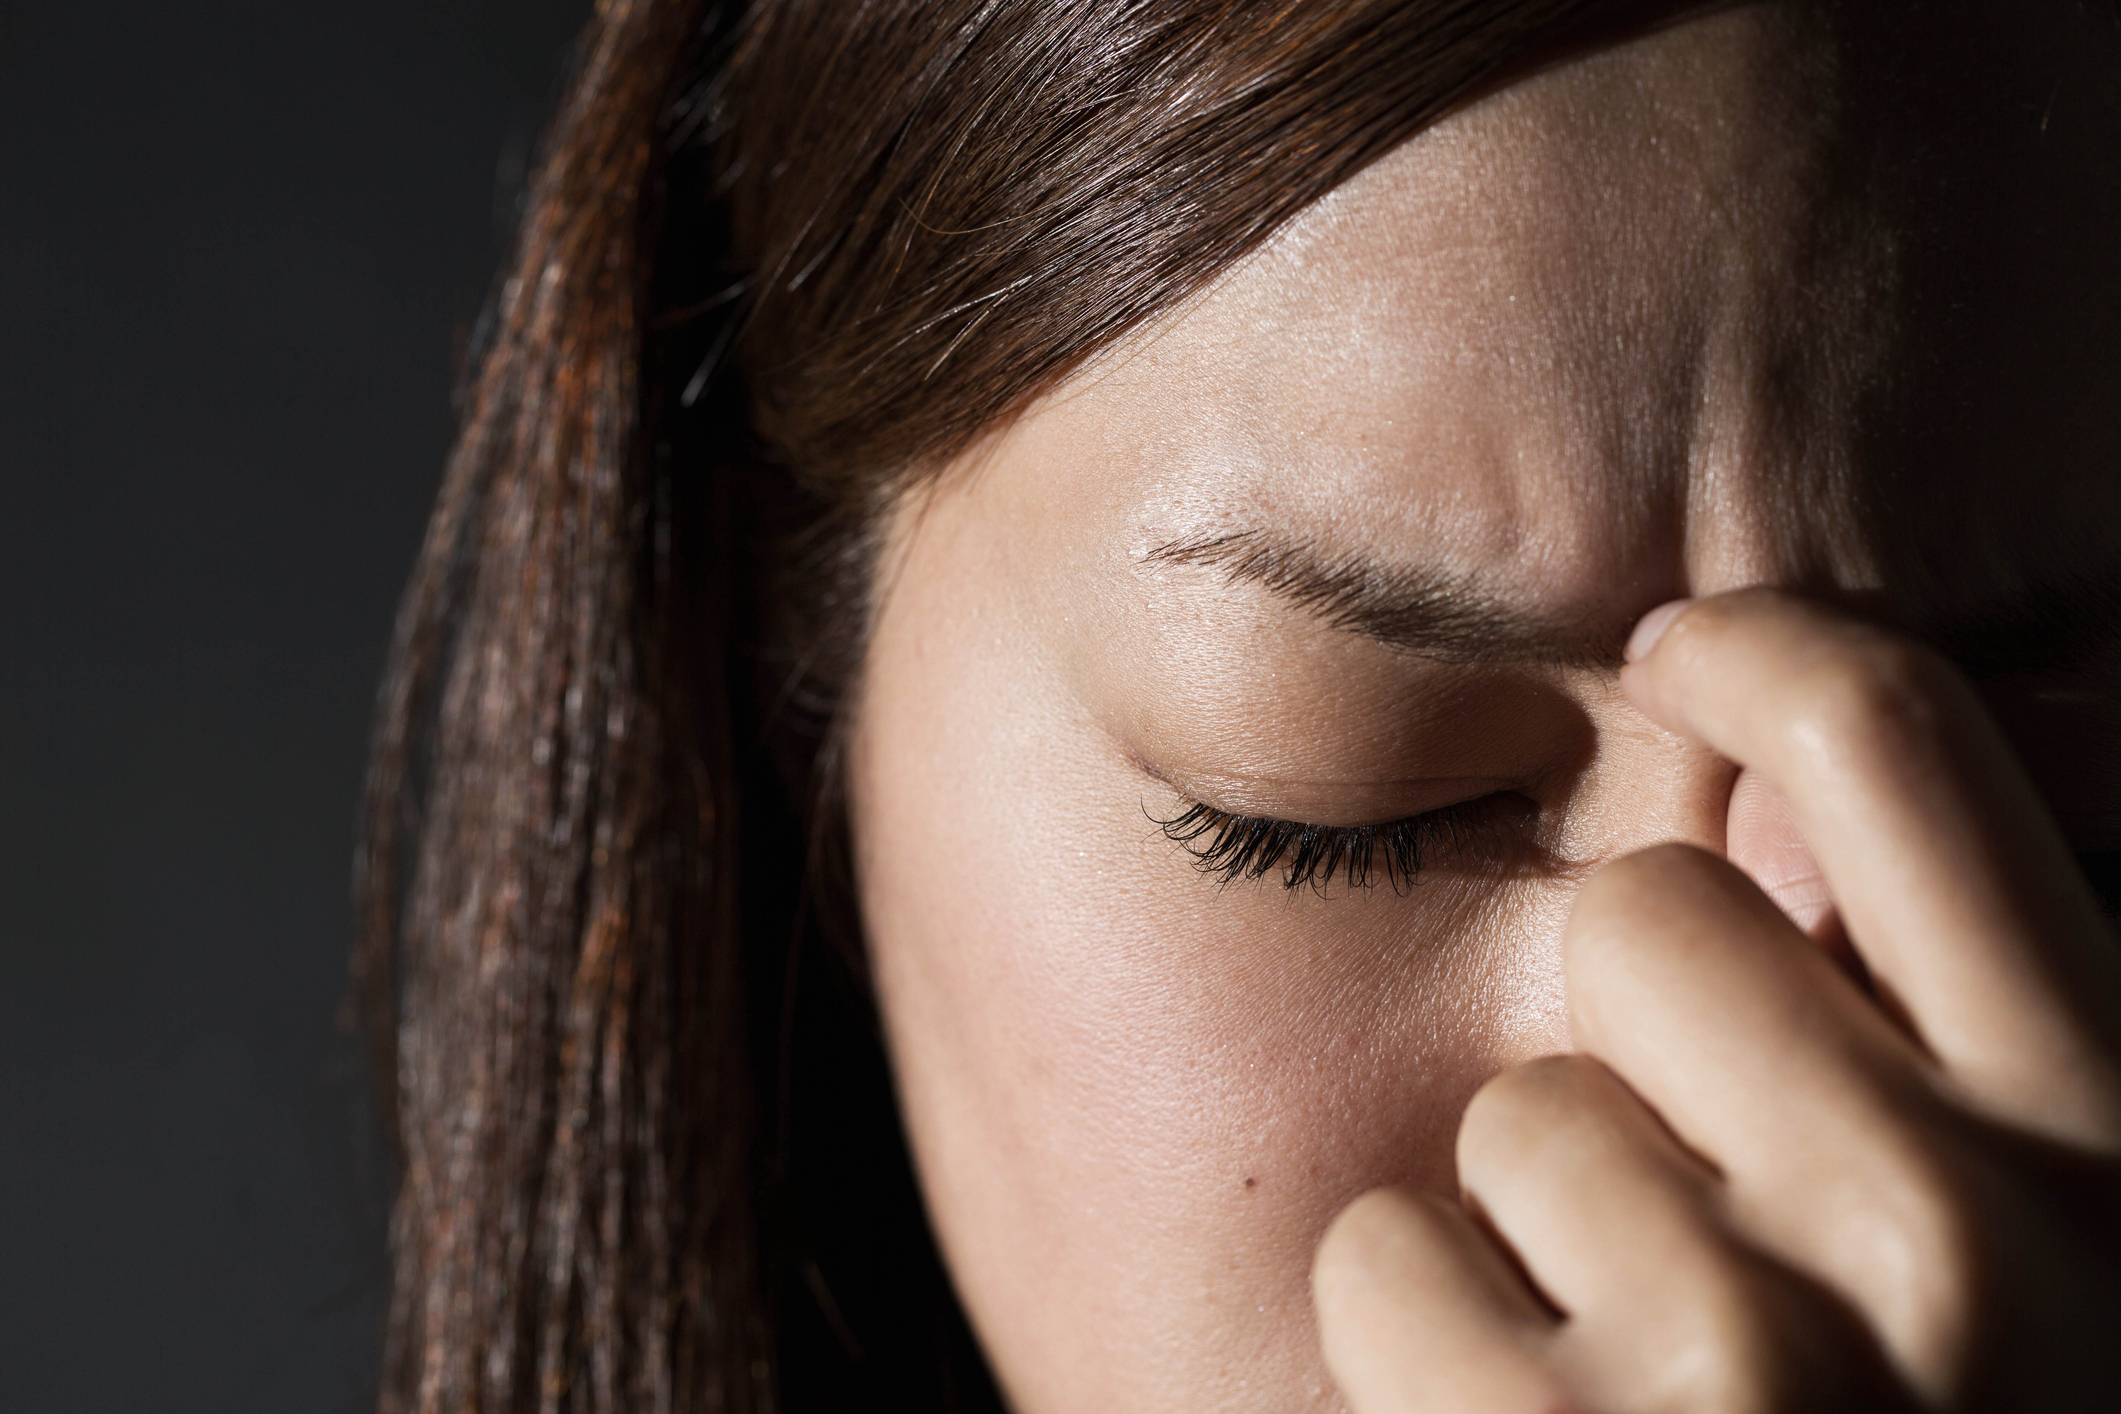 6 ways to prevent a migraine that you've probably never heard of, according to experts